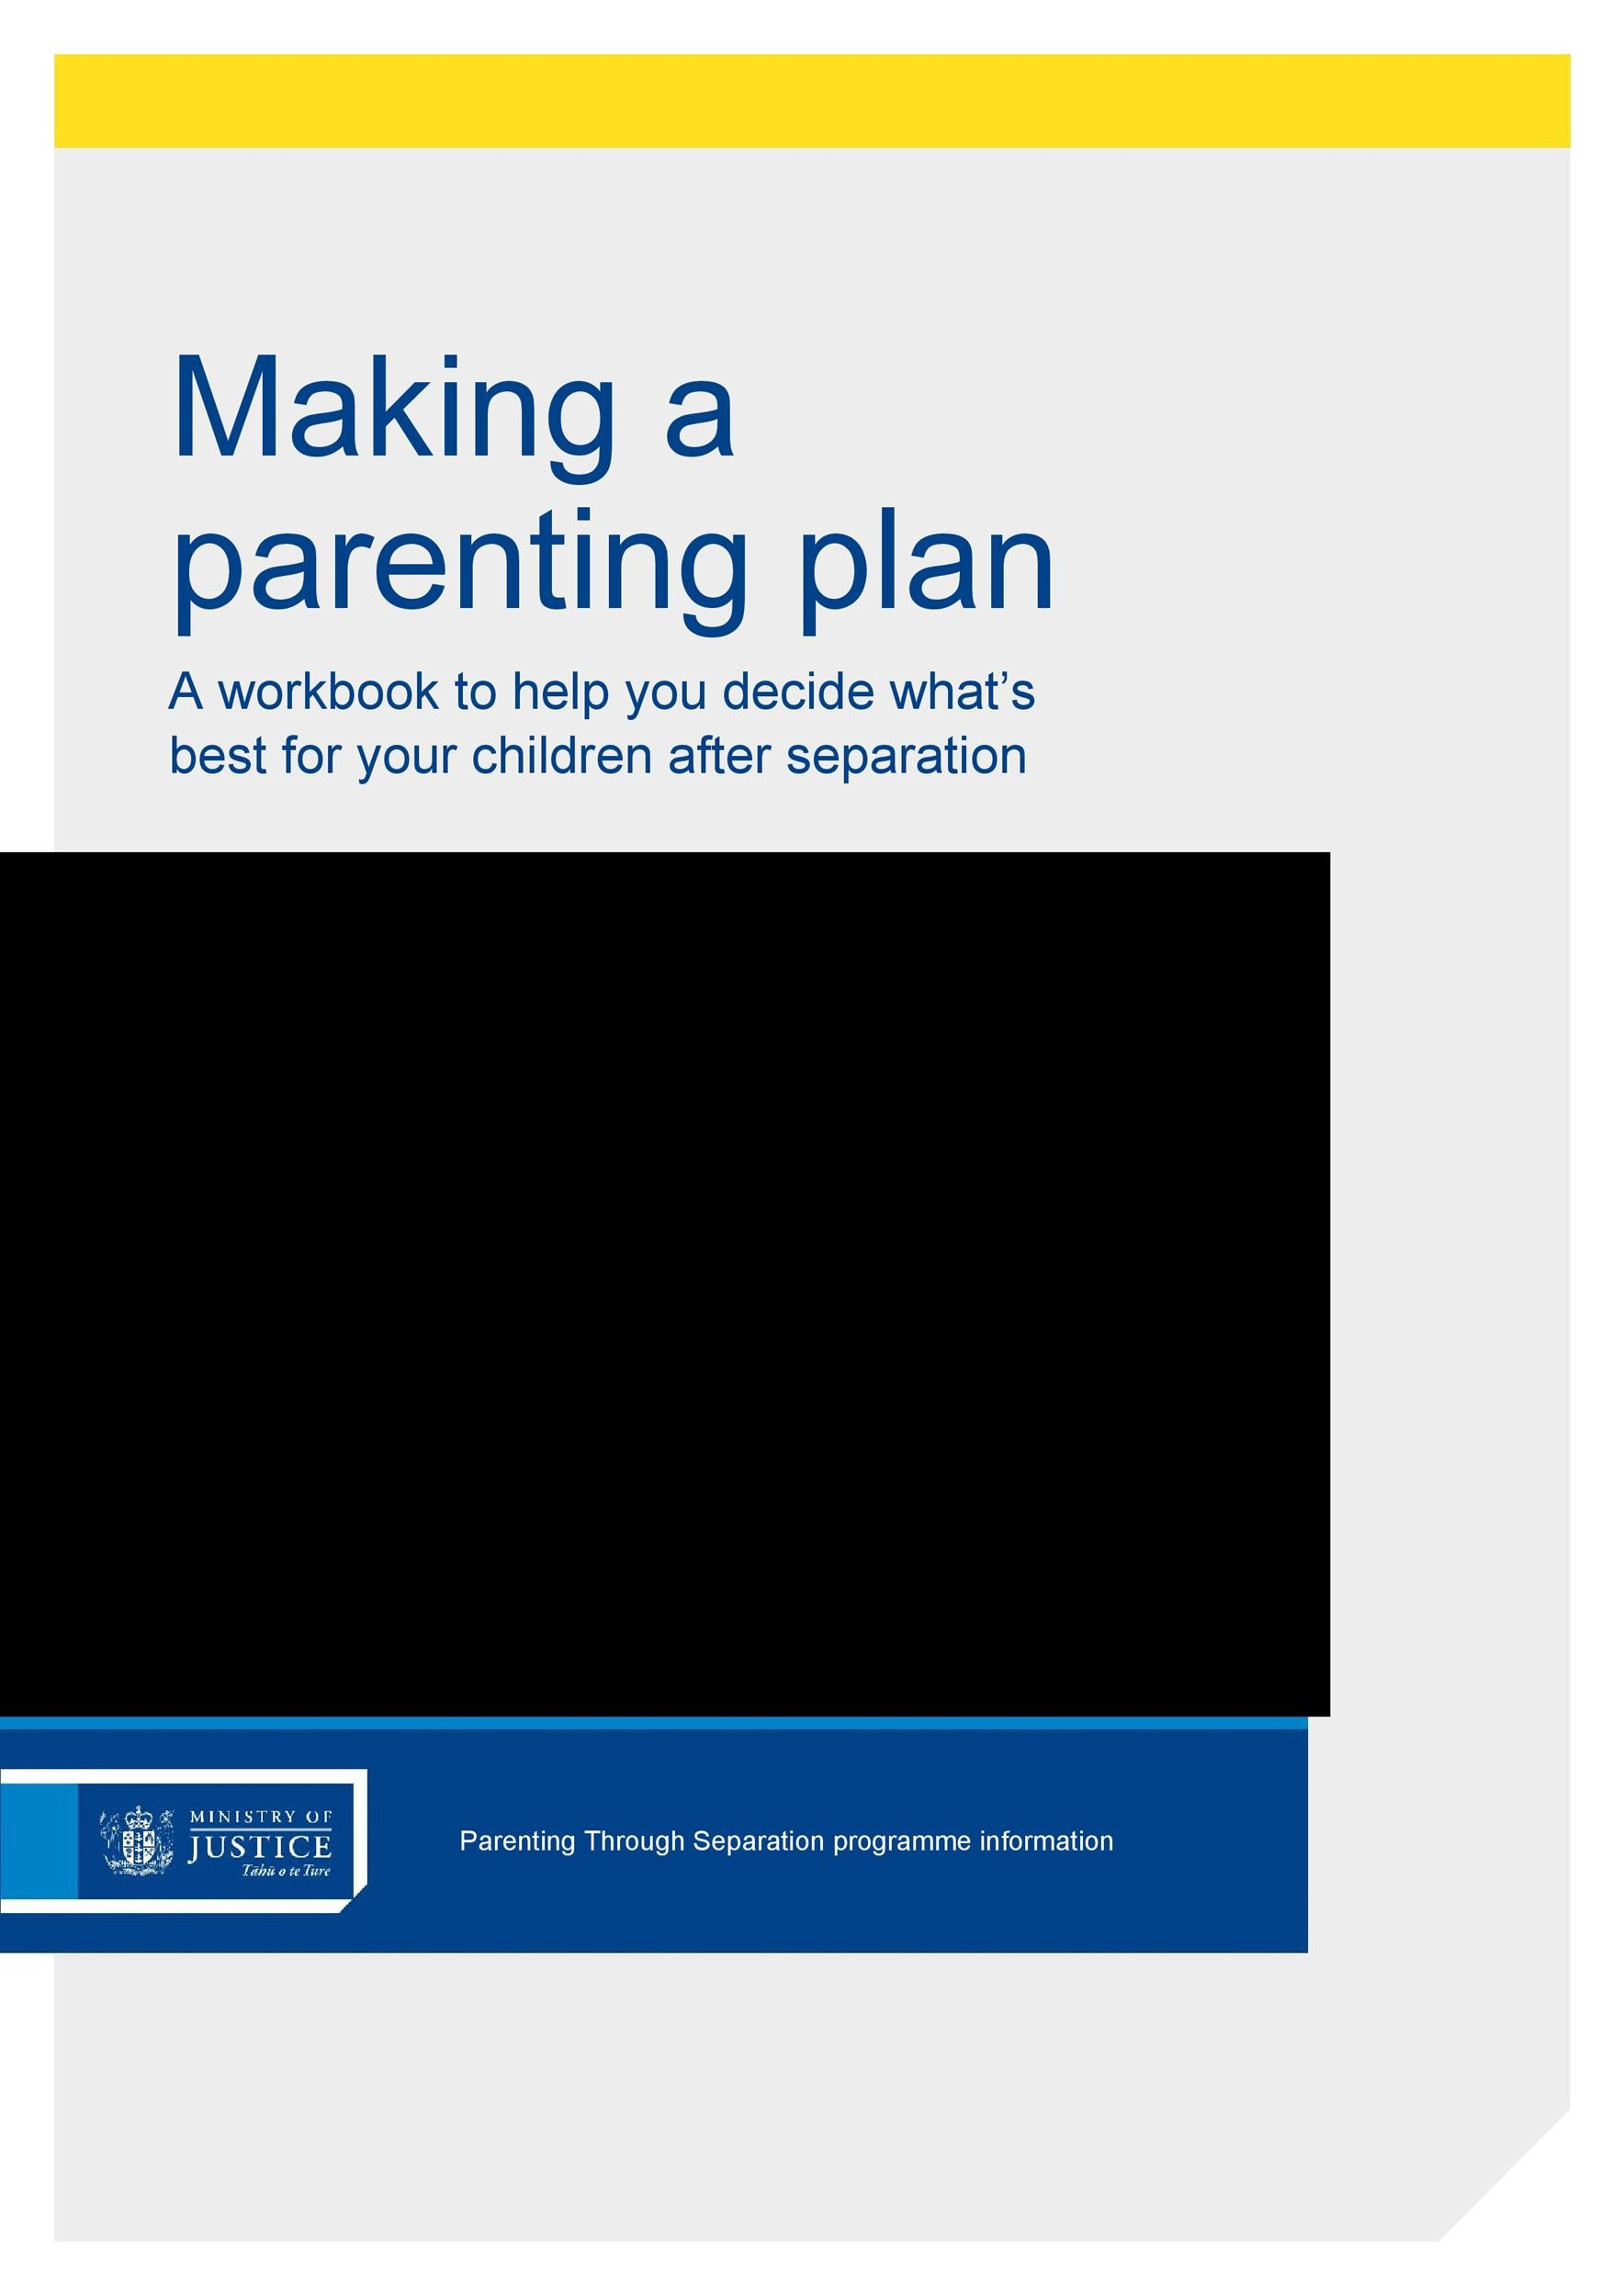 Free parenting plan template 02